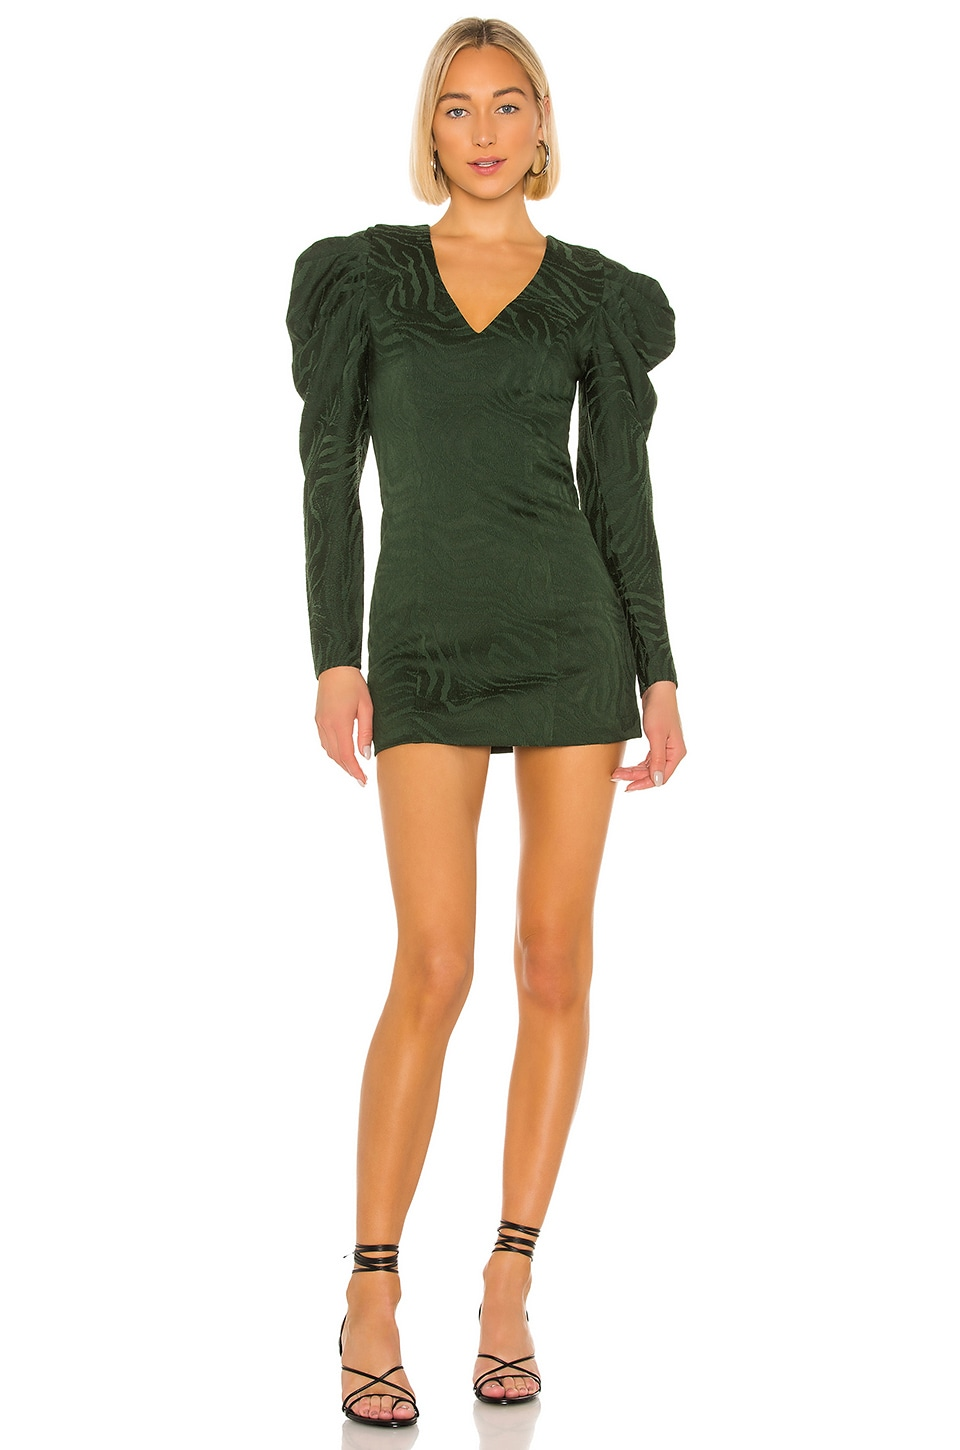 House of Harlow 1960 x REVOLVE Rhys Mini Dress in Emerald